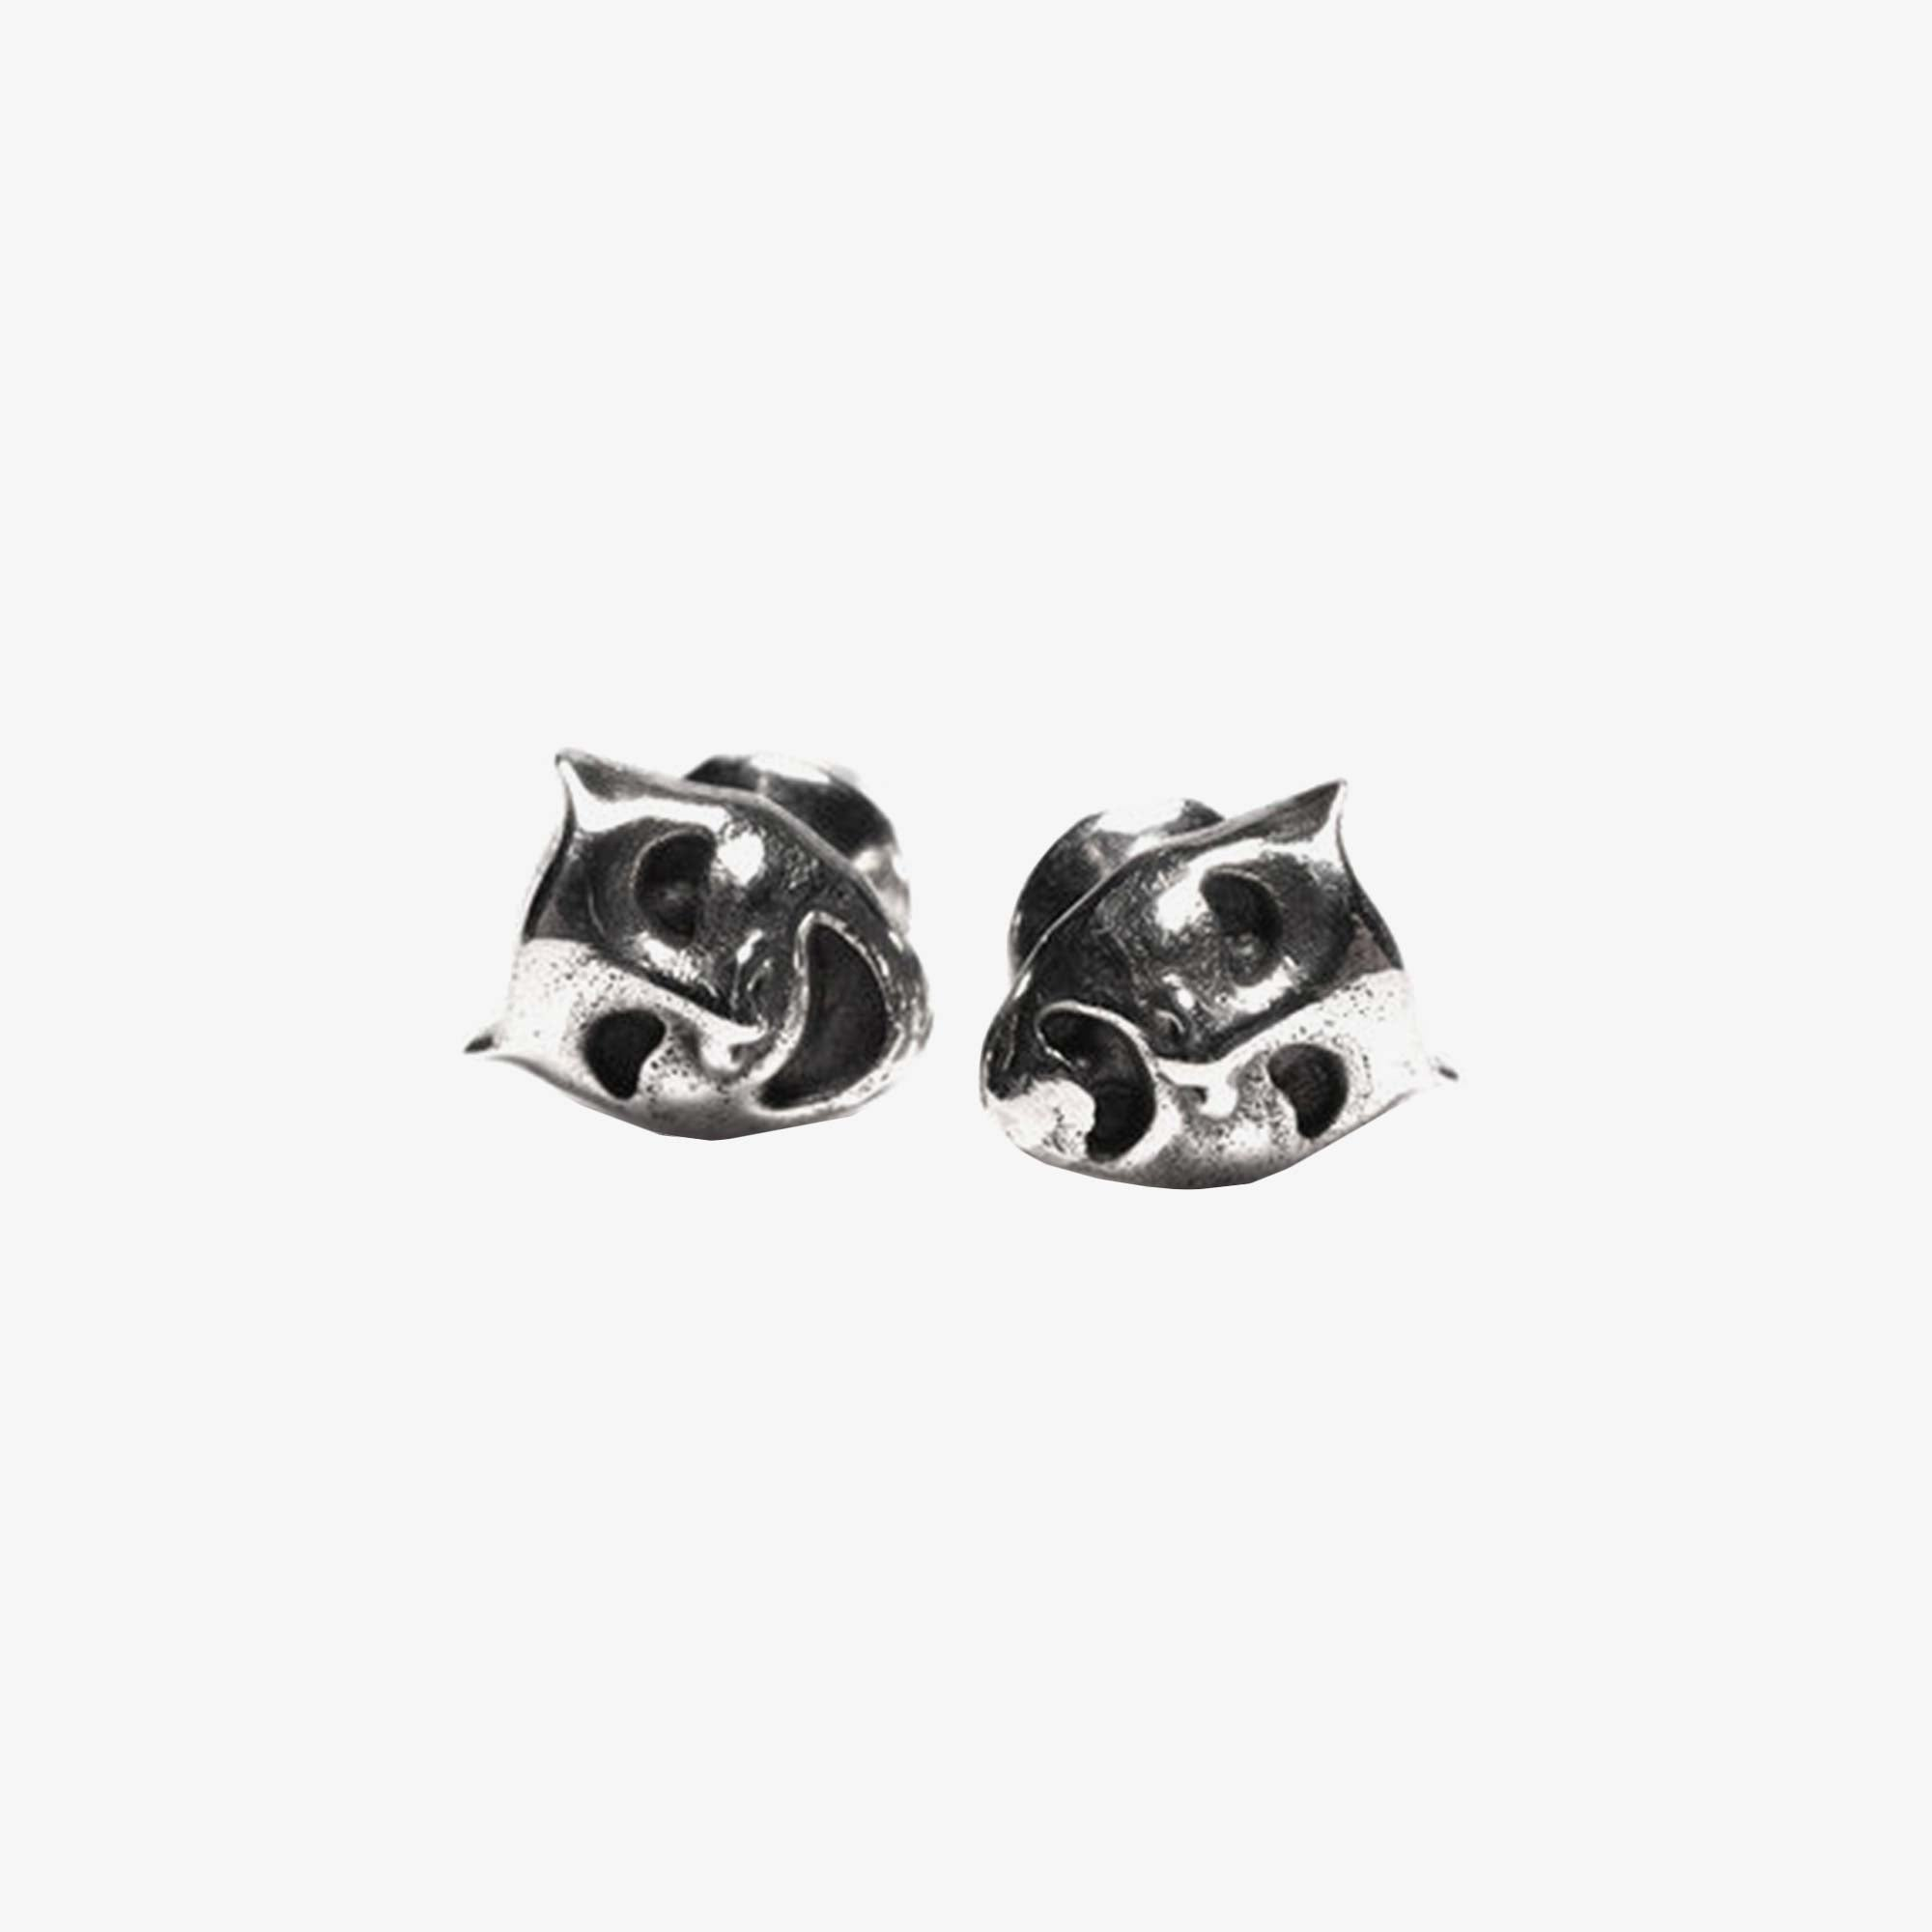 Maple Laugh Now Cry Later Earrings - Silver 1